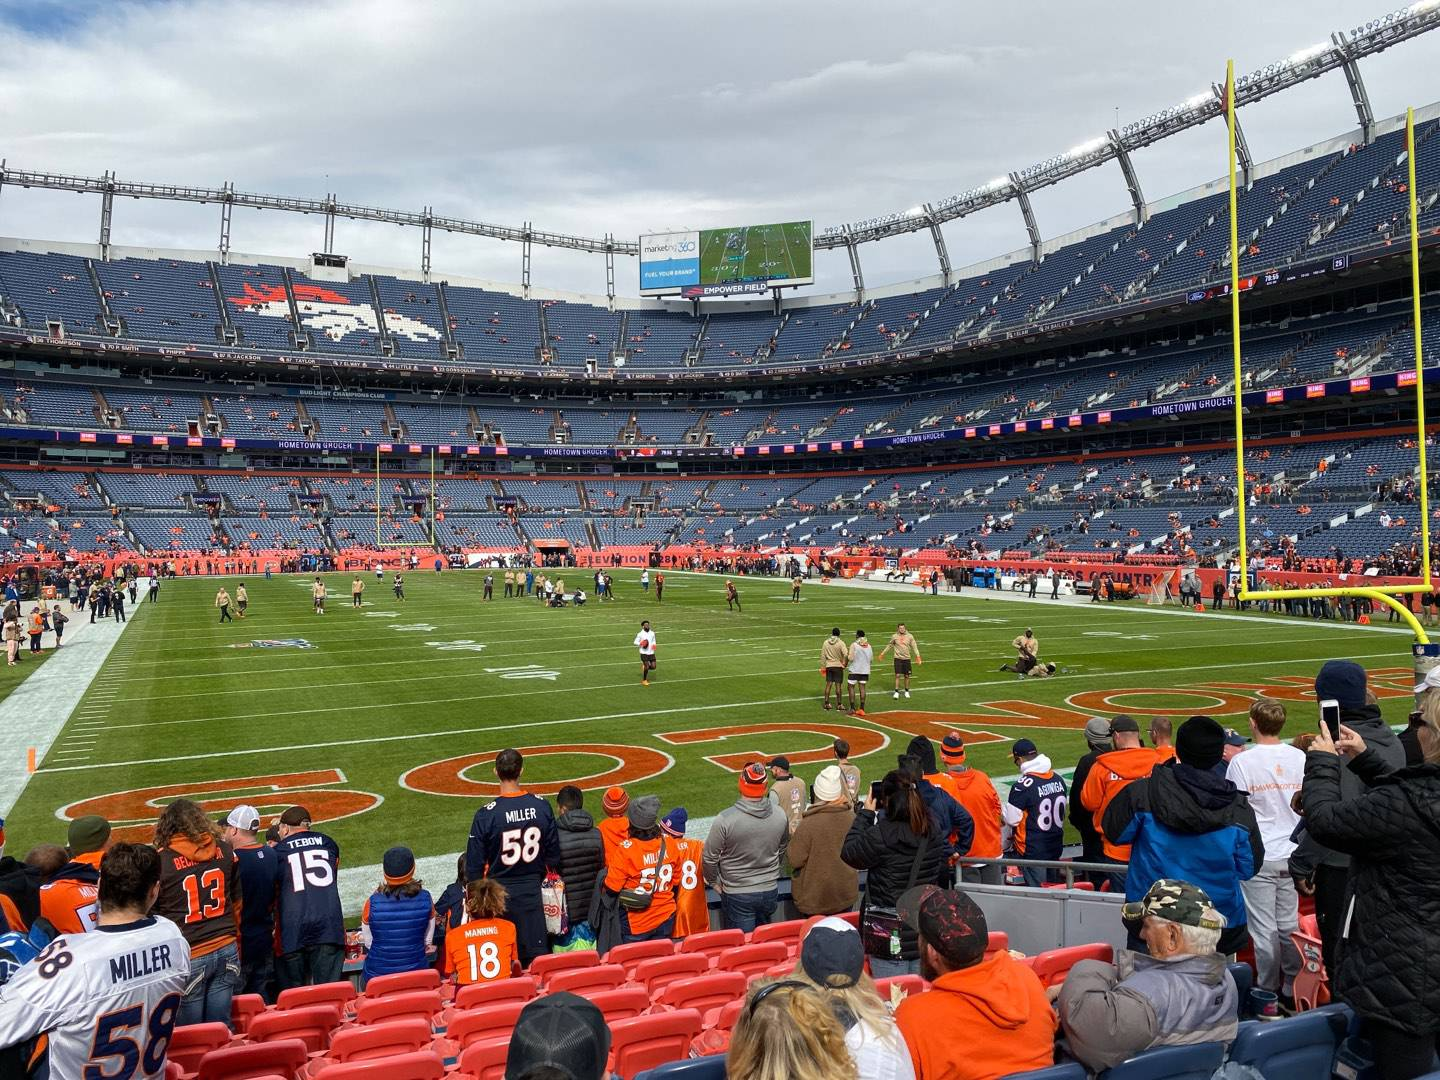 Empower Field at Mile High Stadium Section 134 Row 10 Seat 8